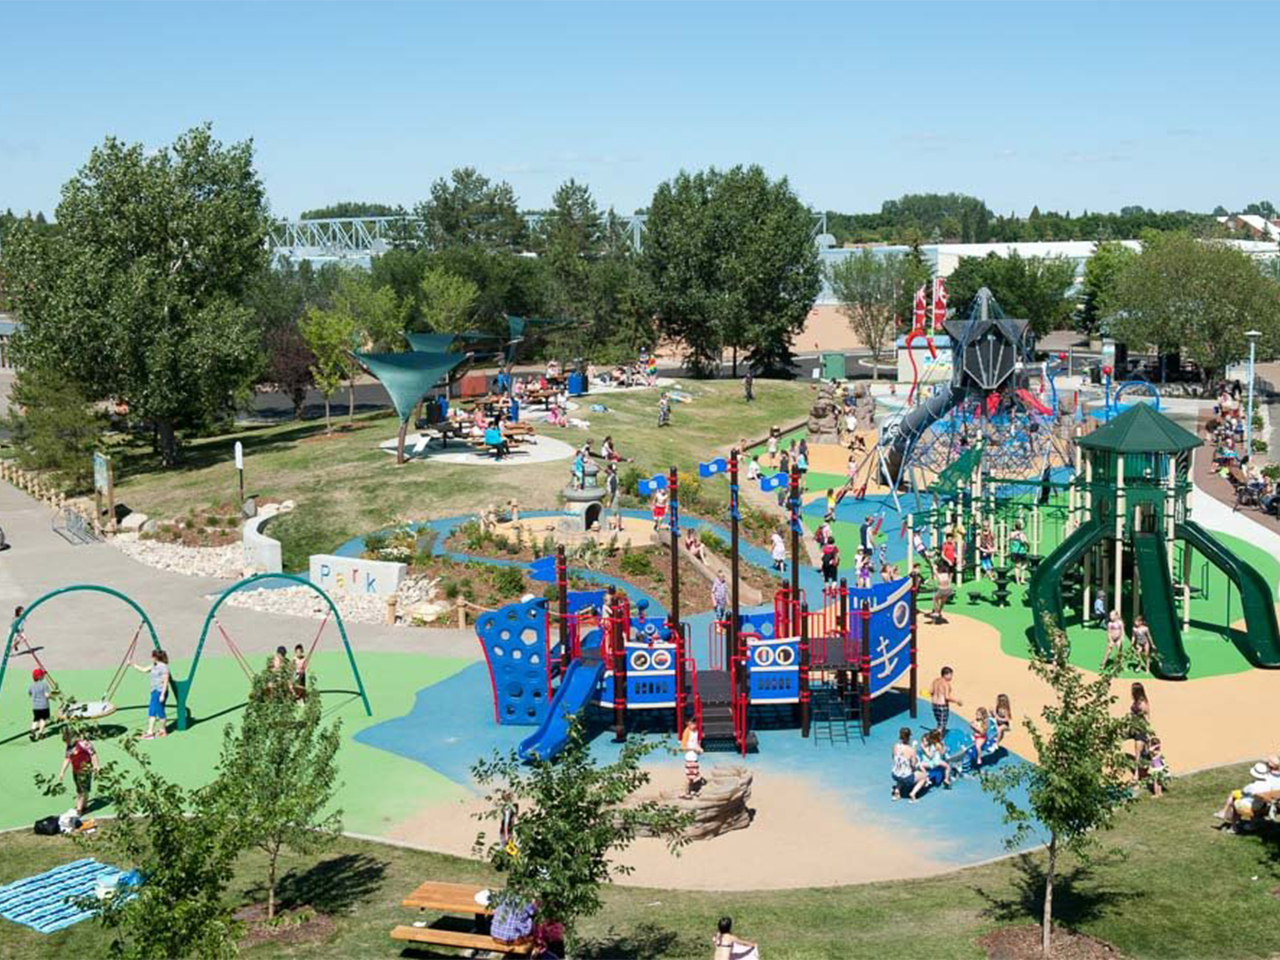 An overhead photo of Broadmoor park with several large play-structures